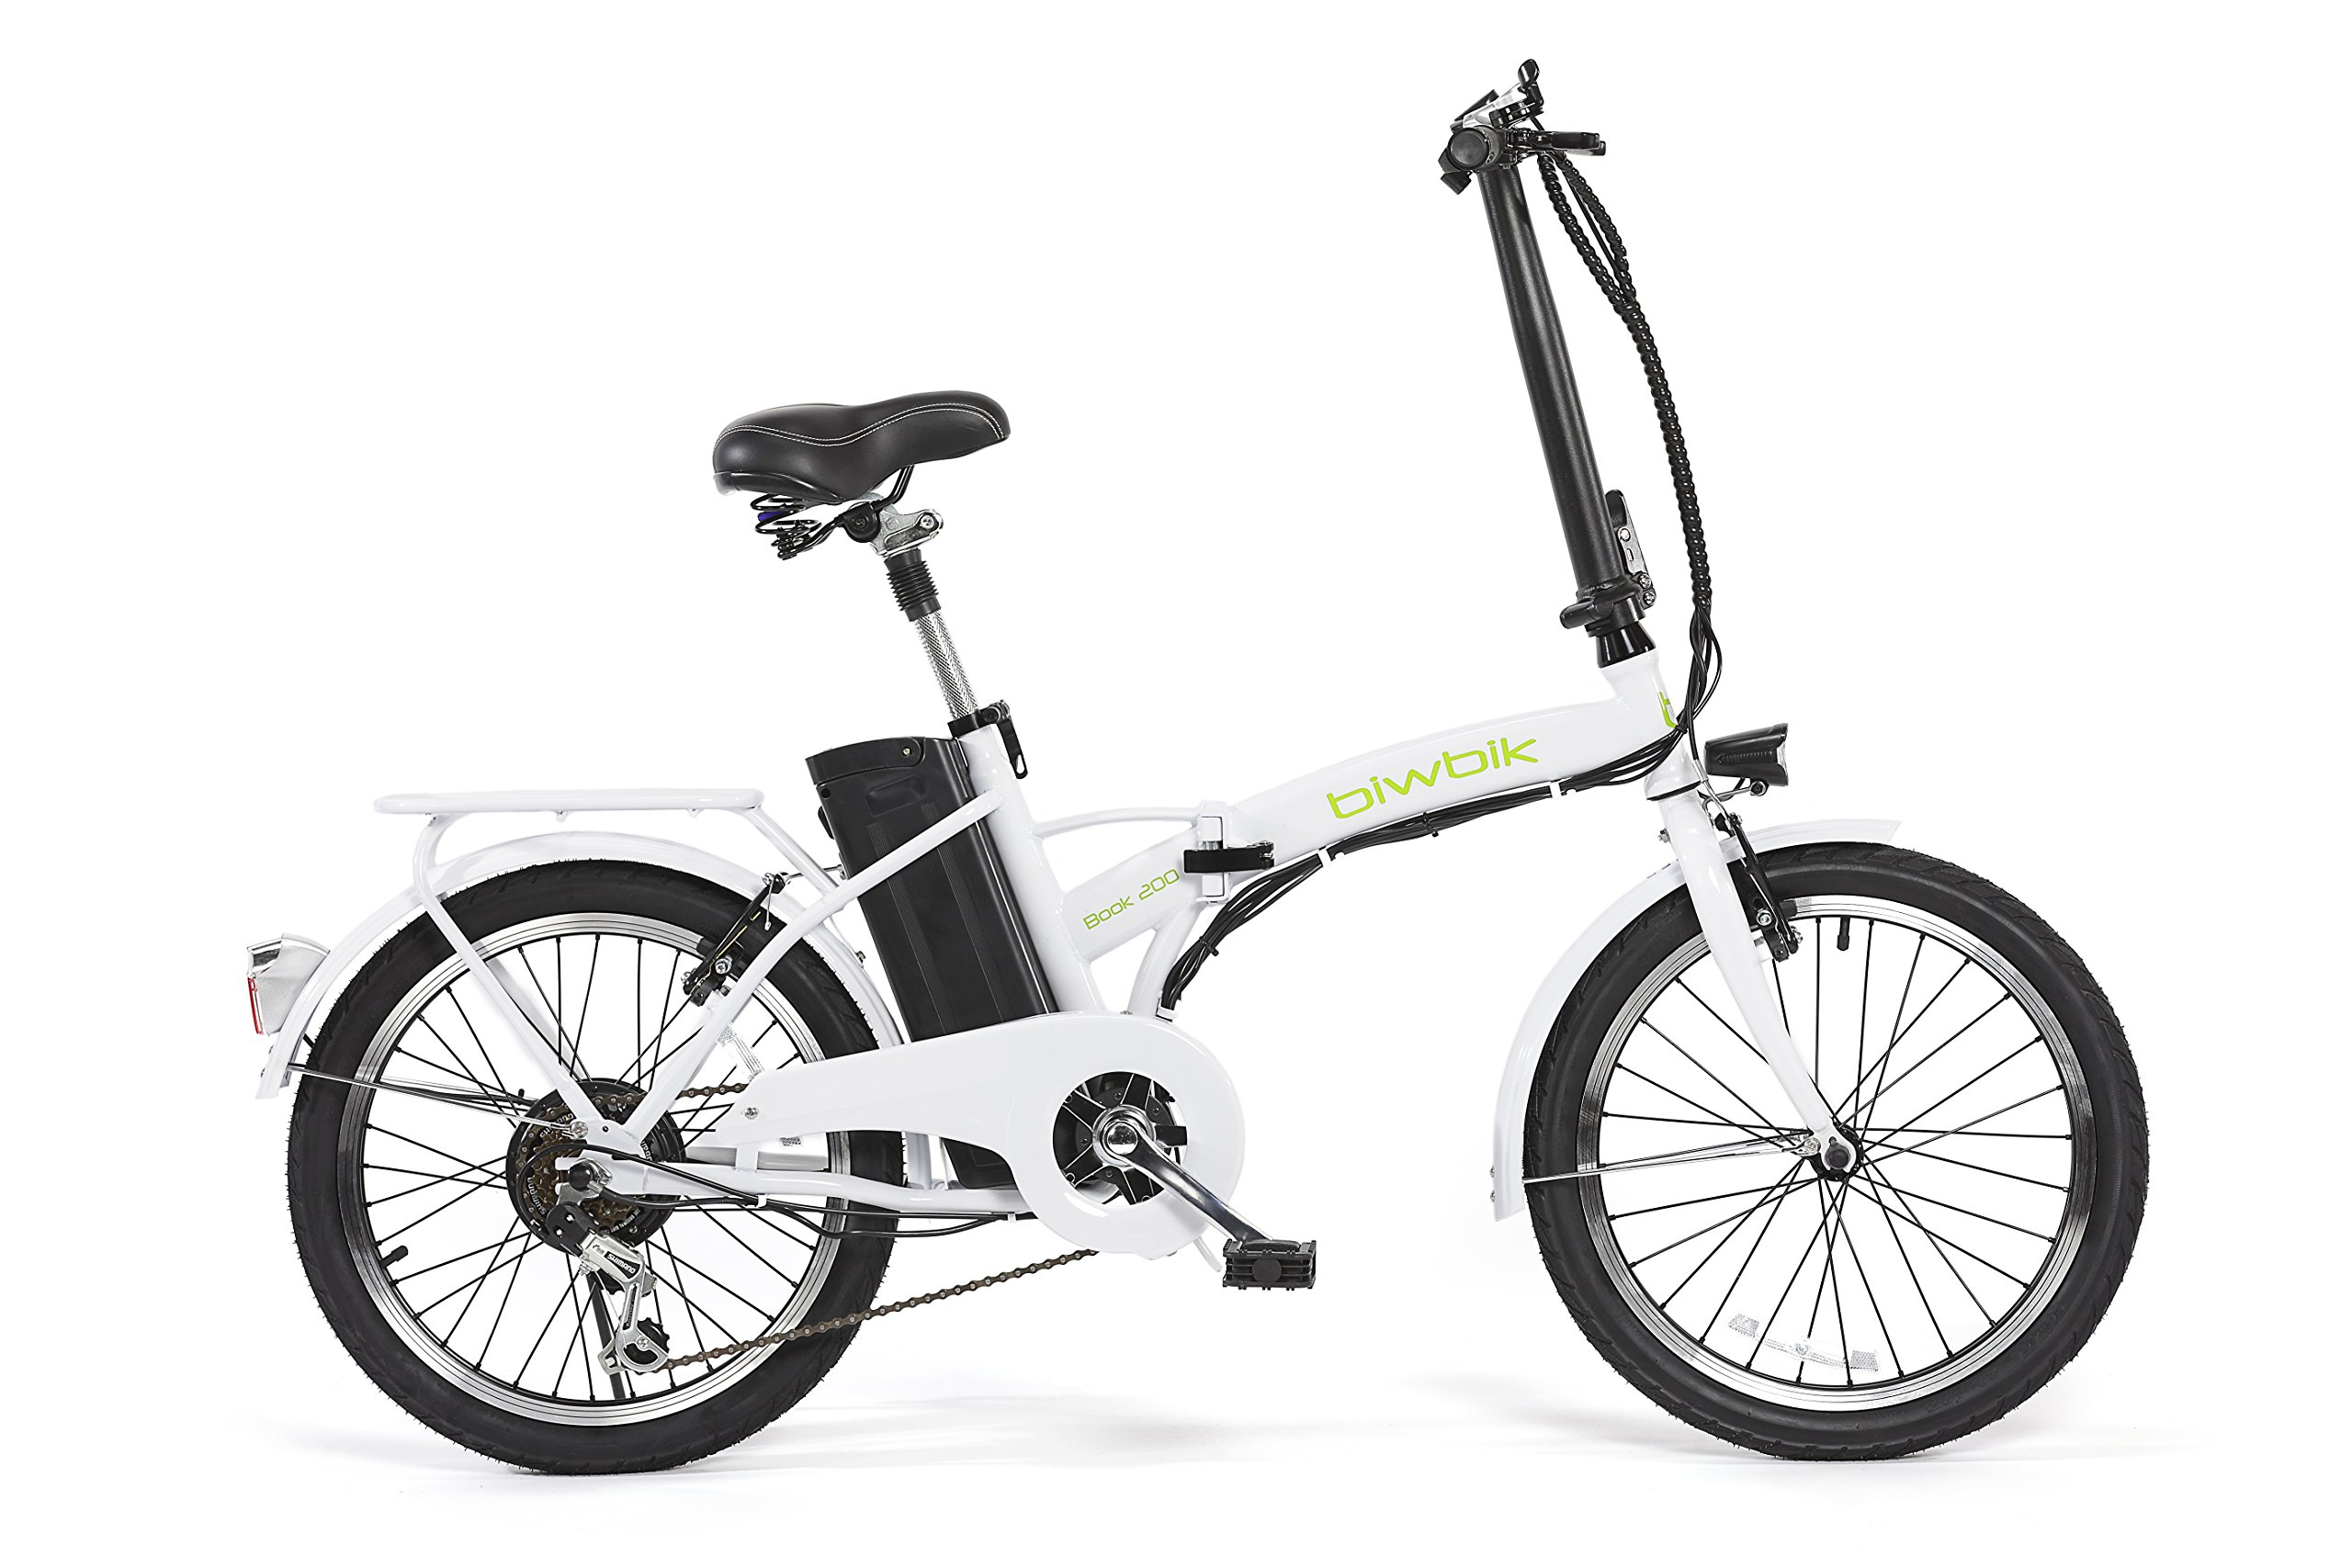 Bicicleta ELECTRICA Plegable Mod. Book BATERIA Ion Litio 36V10AH (Blanco) product image